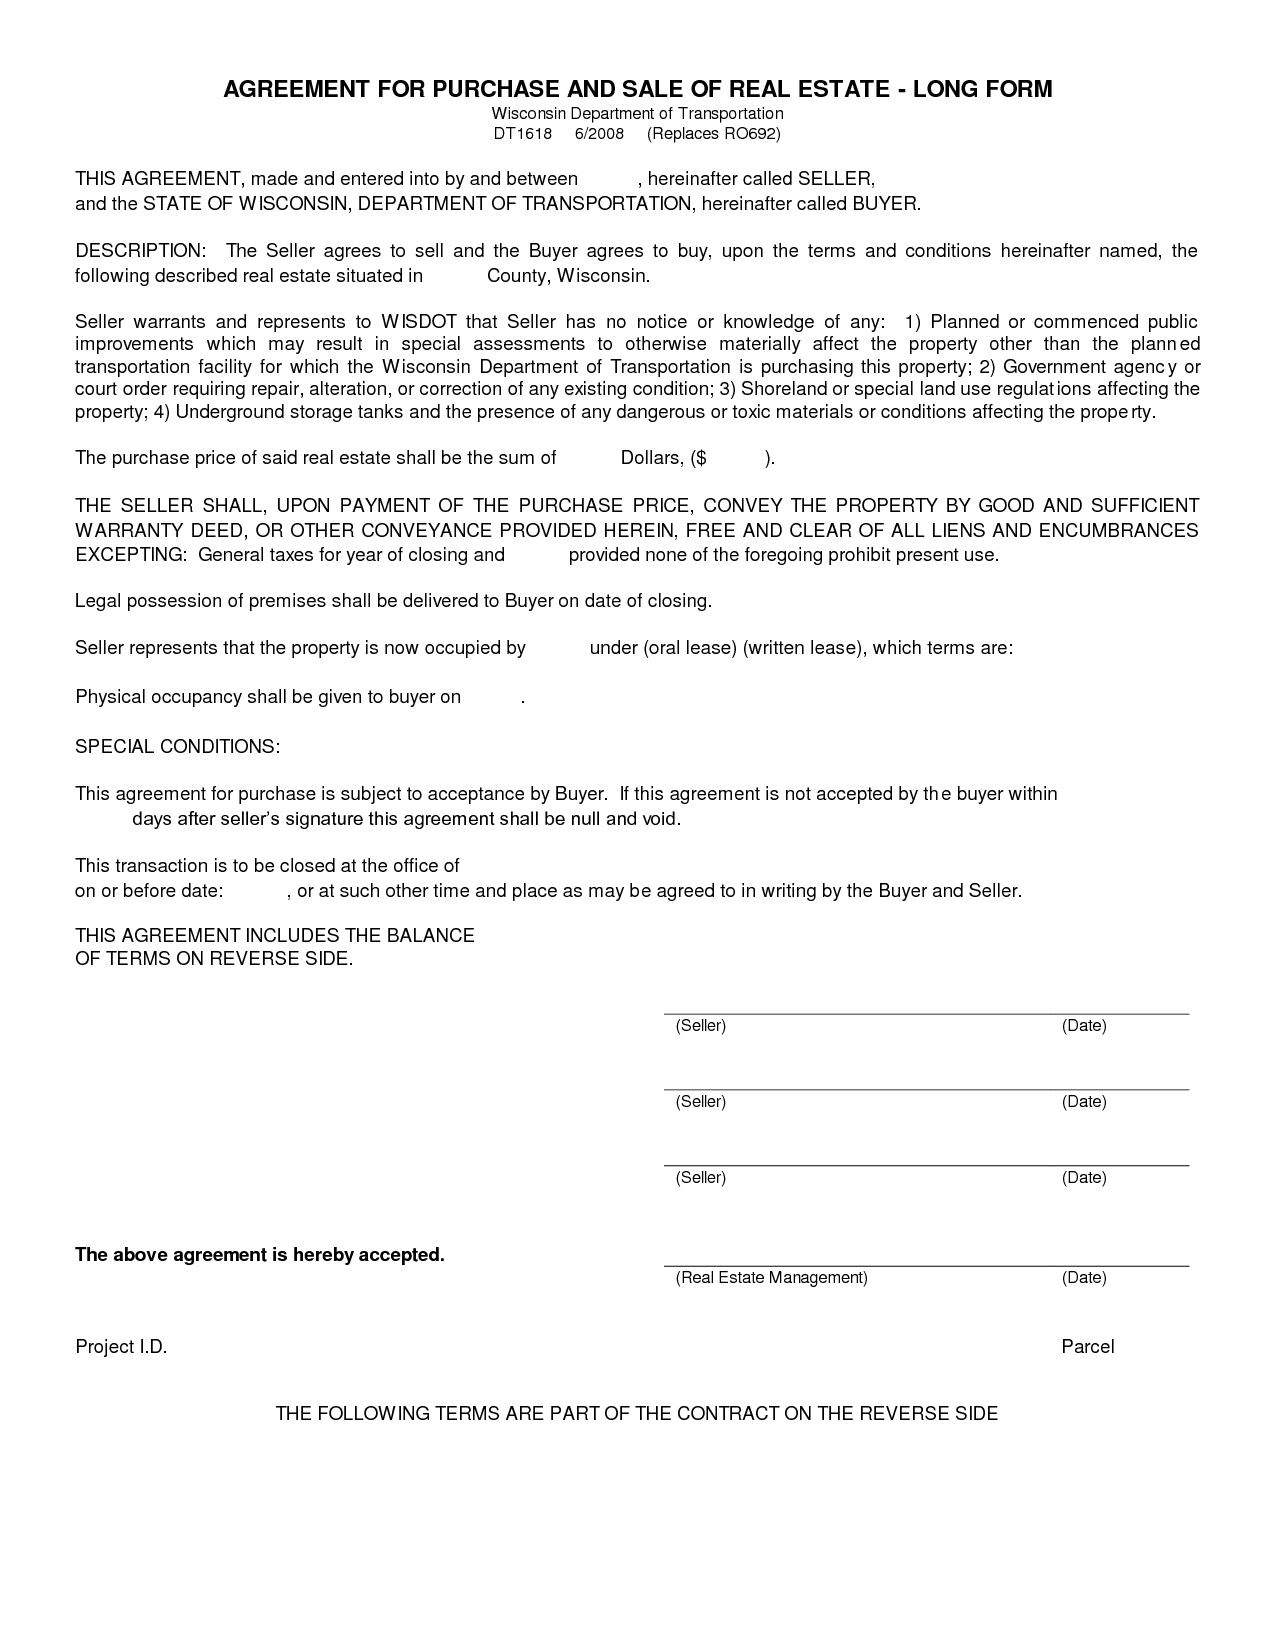 Agreement To Purchase Real Estate Form Free Free Printable Documents Real Estate Contract Purchase Agreement Contract Template